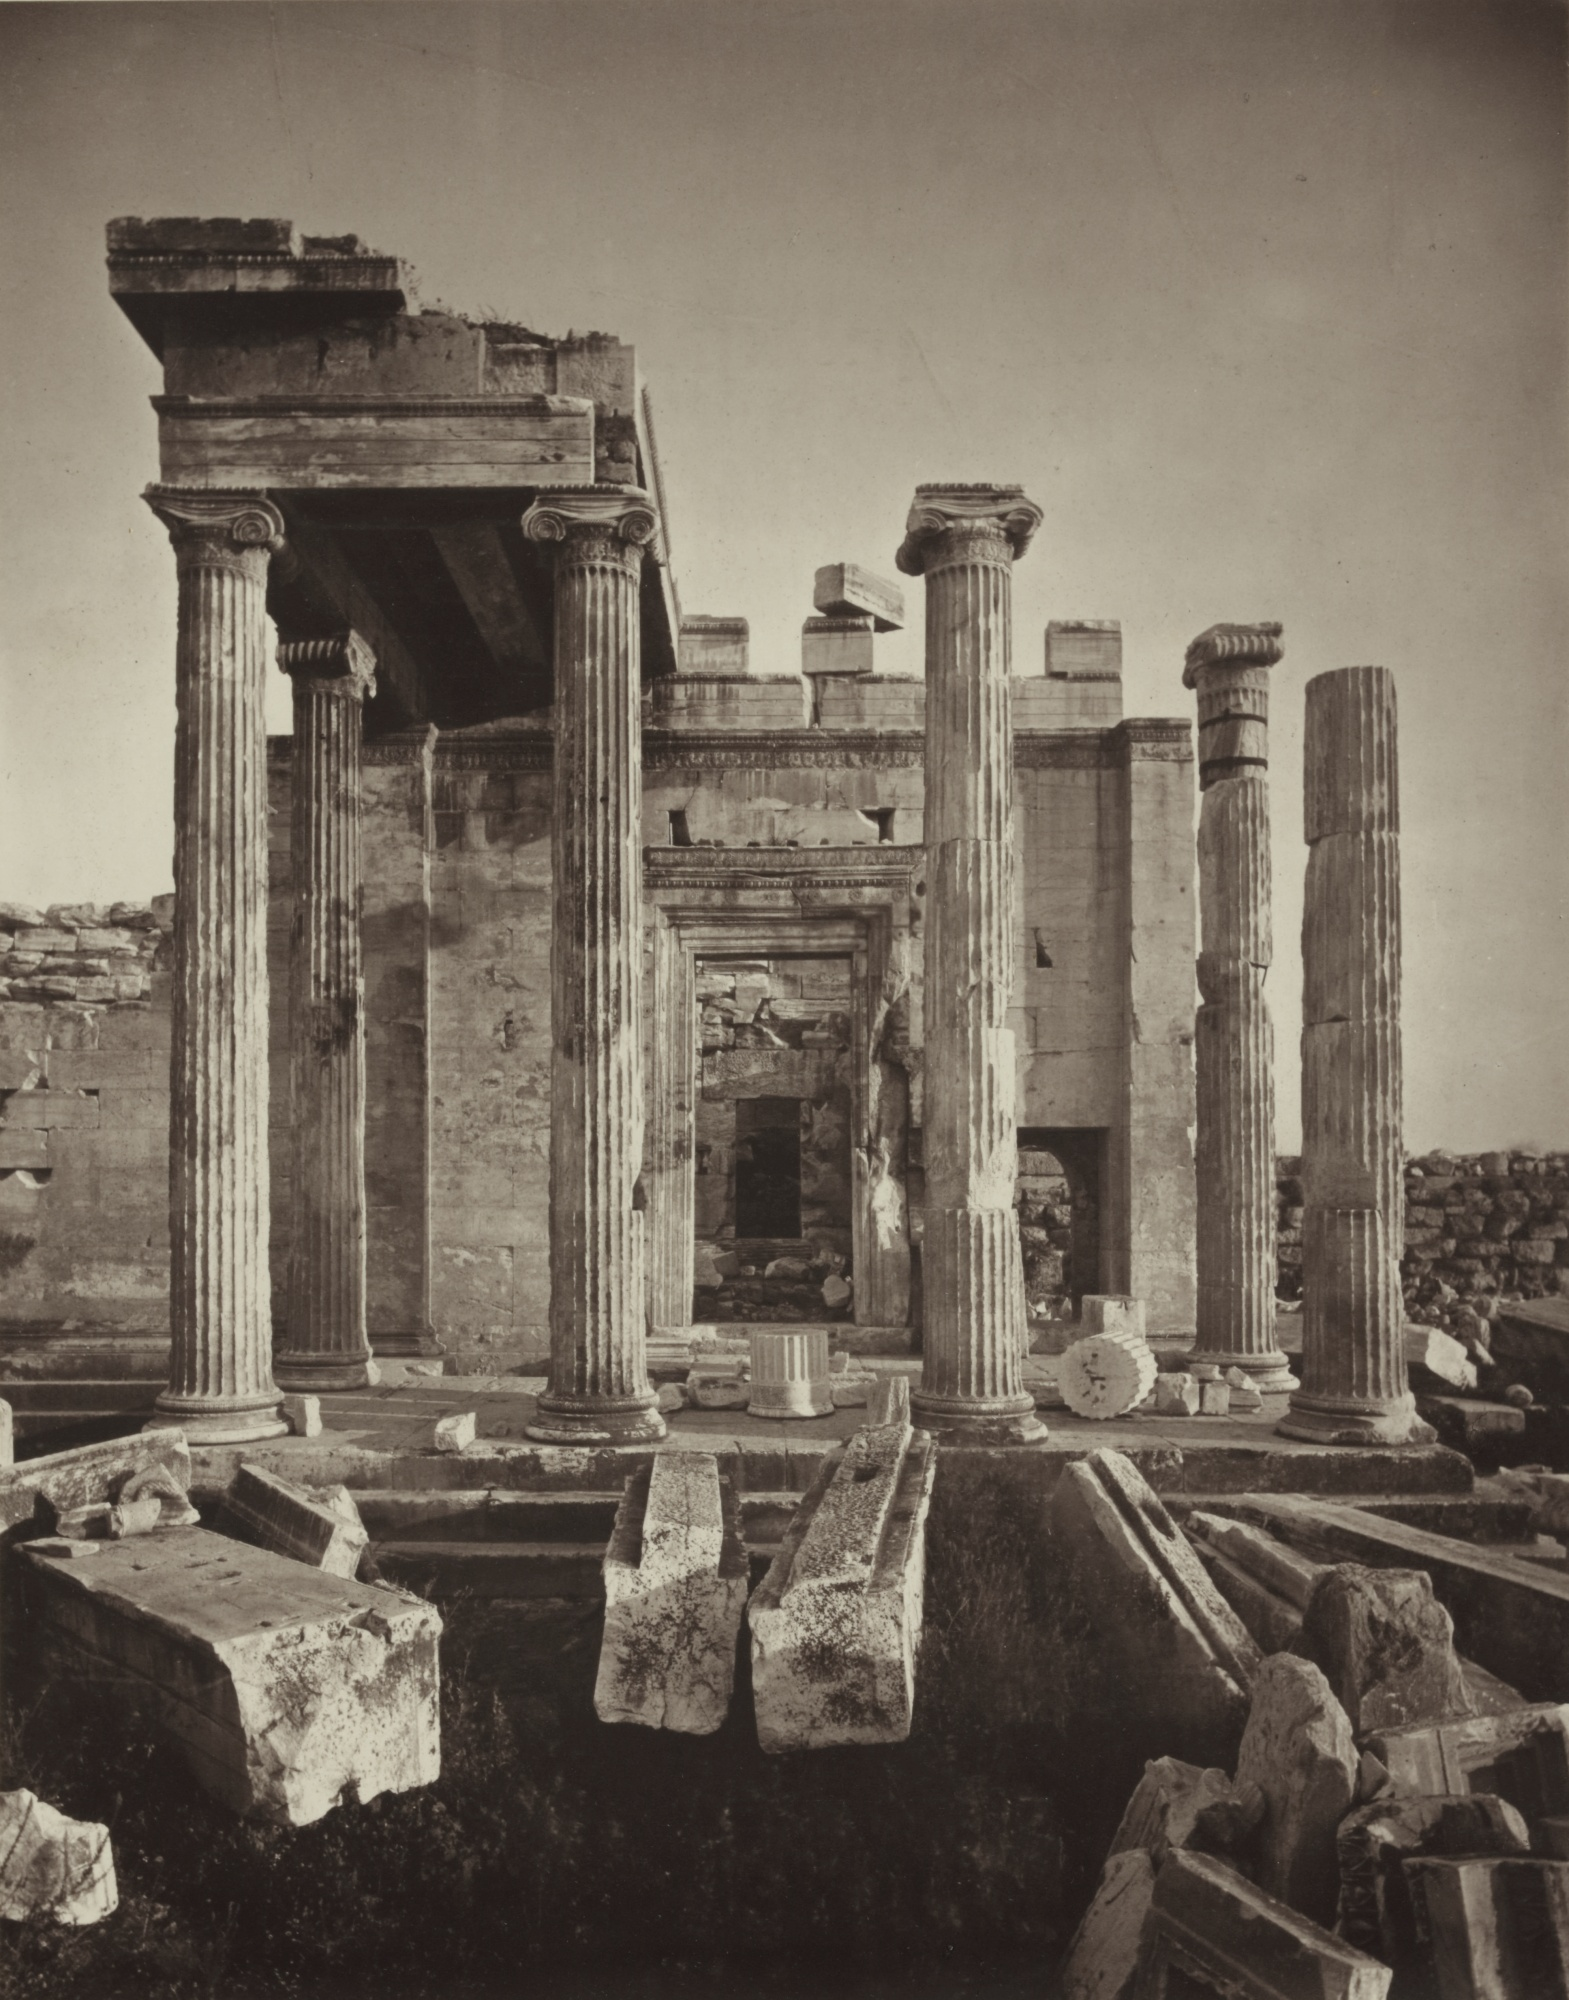 William James Stillman-The Acropolis Of Athens, Illustrated Picturesquely And Architecturally In Photography-1870